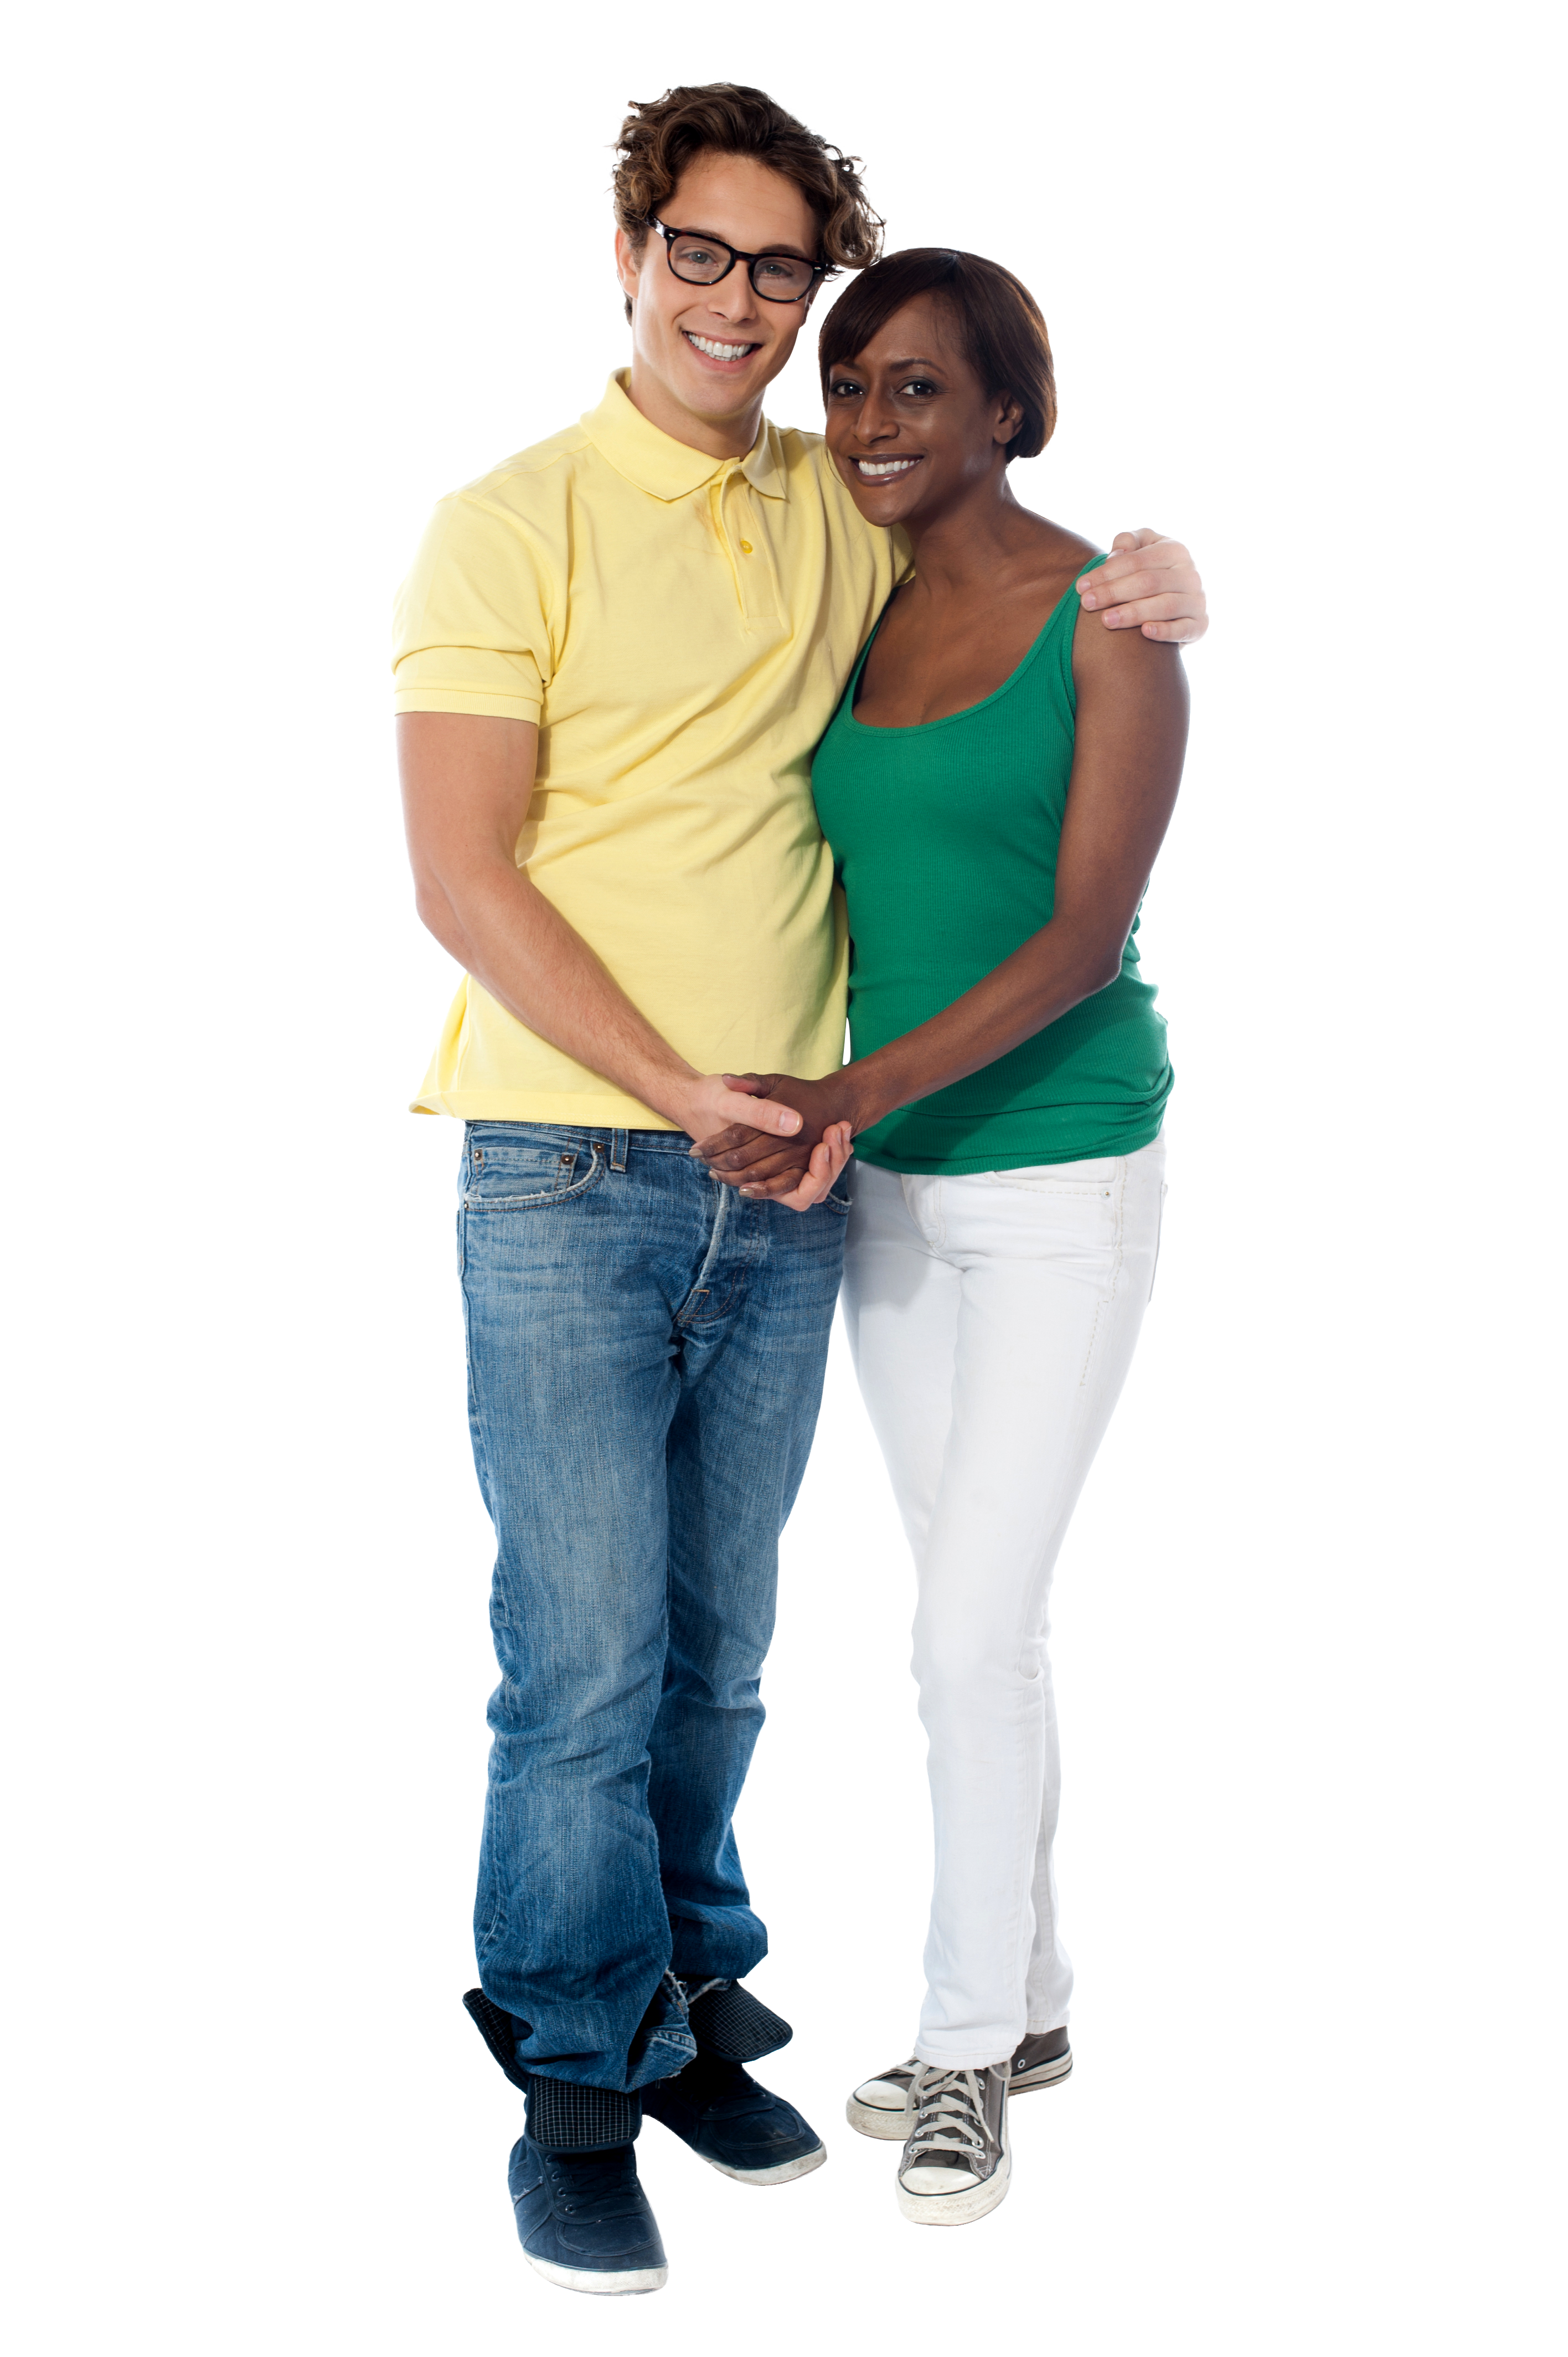 Happy Couple Png Image